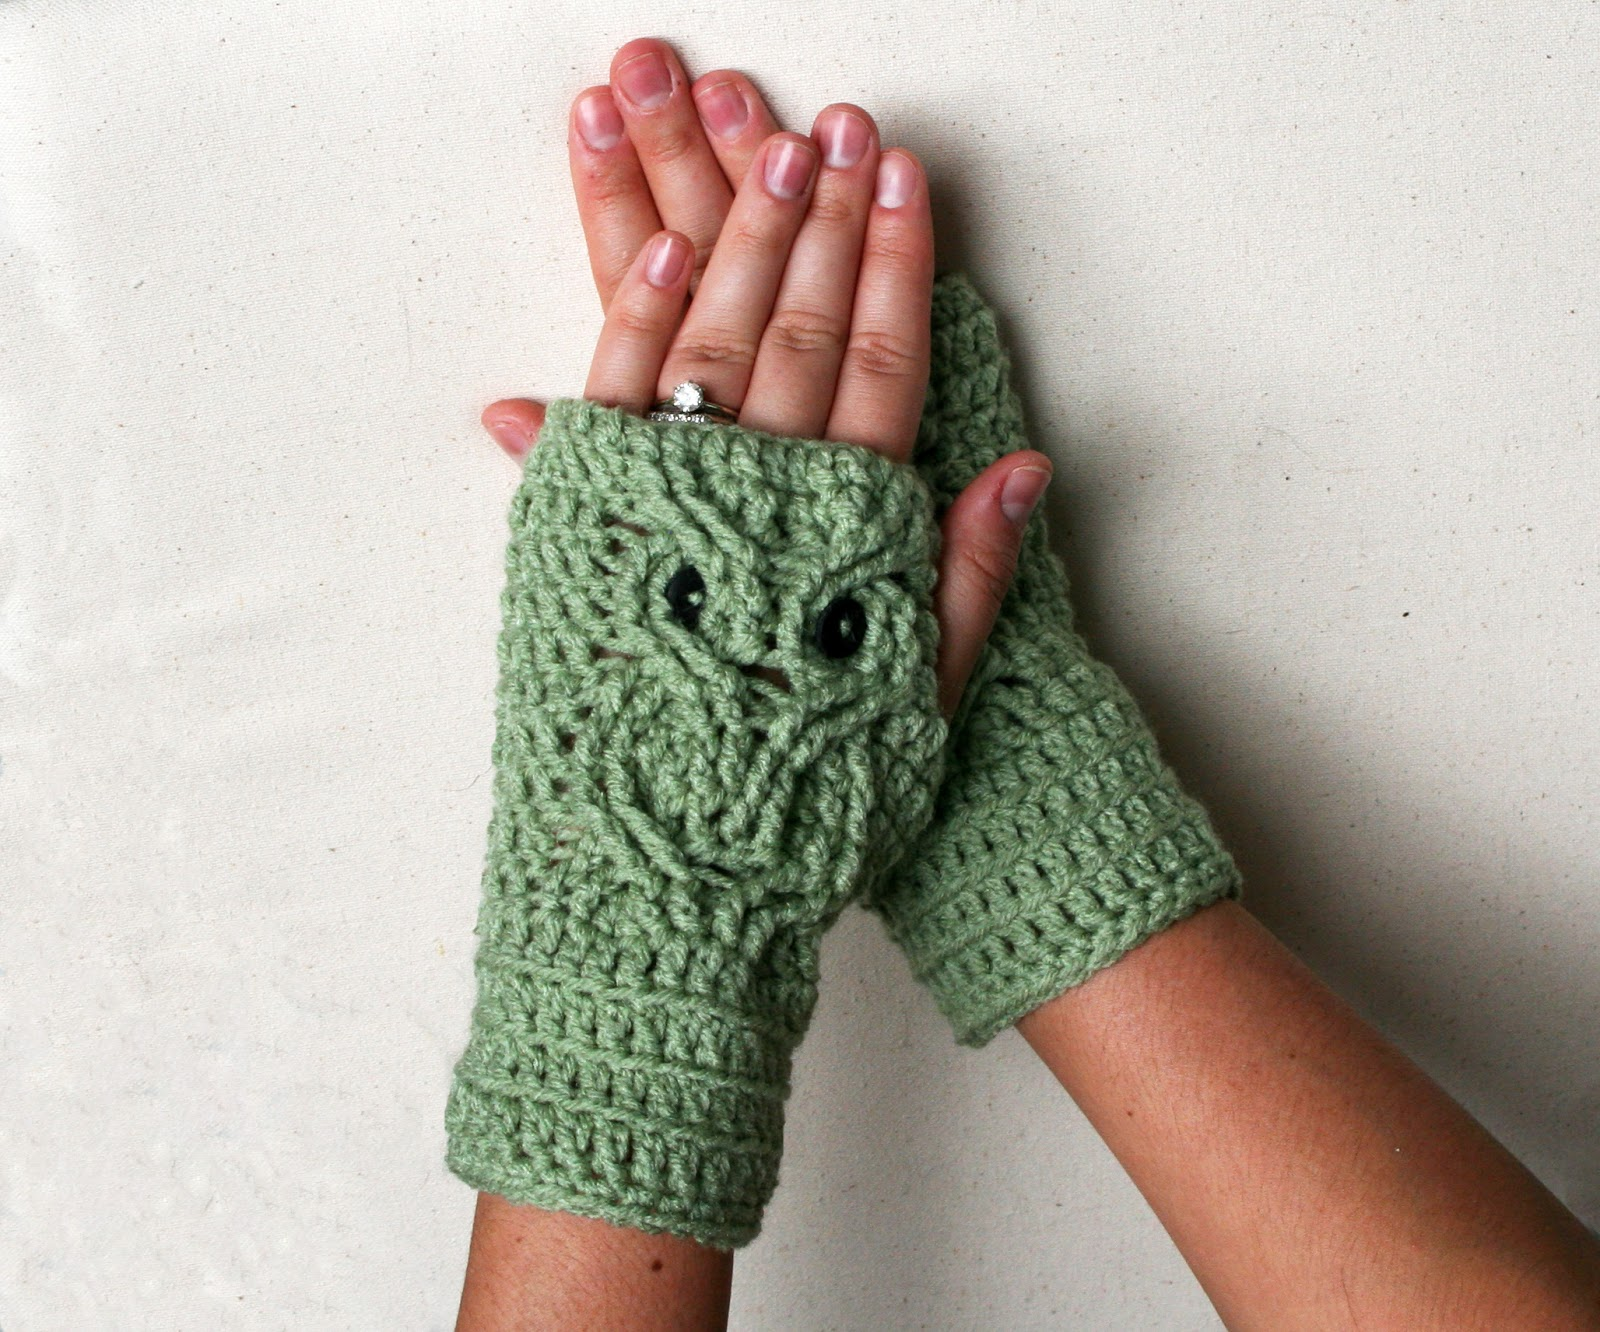 Crochet Patterns Gloves : Tampa Bay Crochet: Free Crochet Pattern: Owl Fingerless Gloves